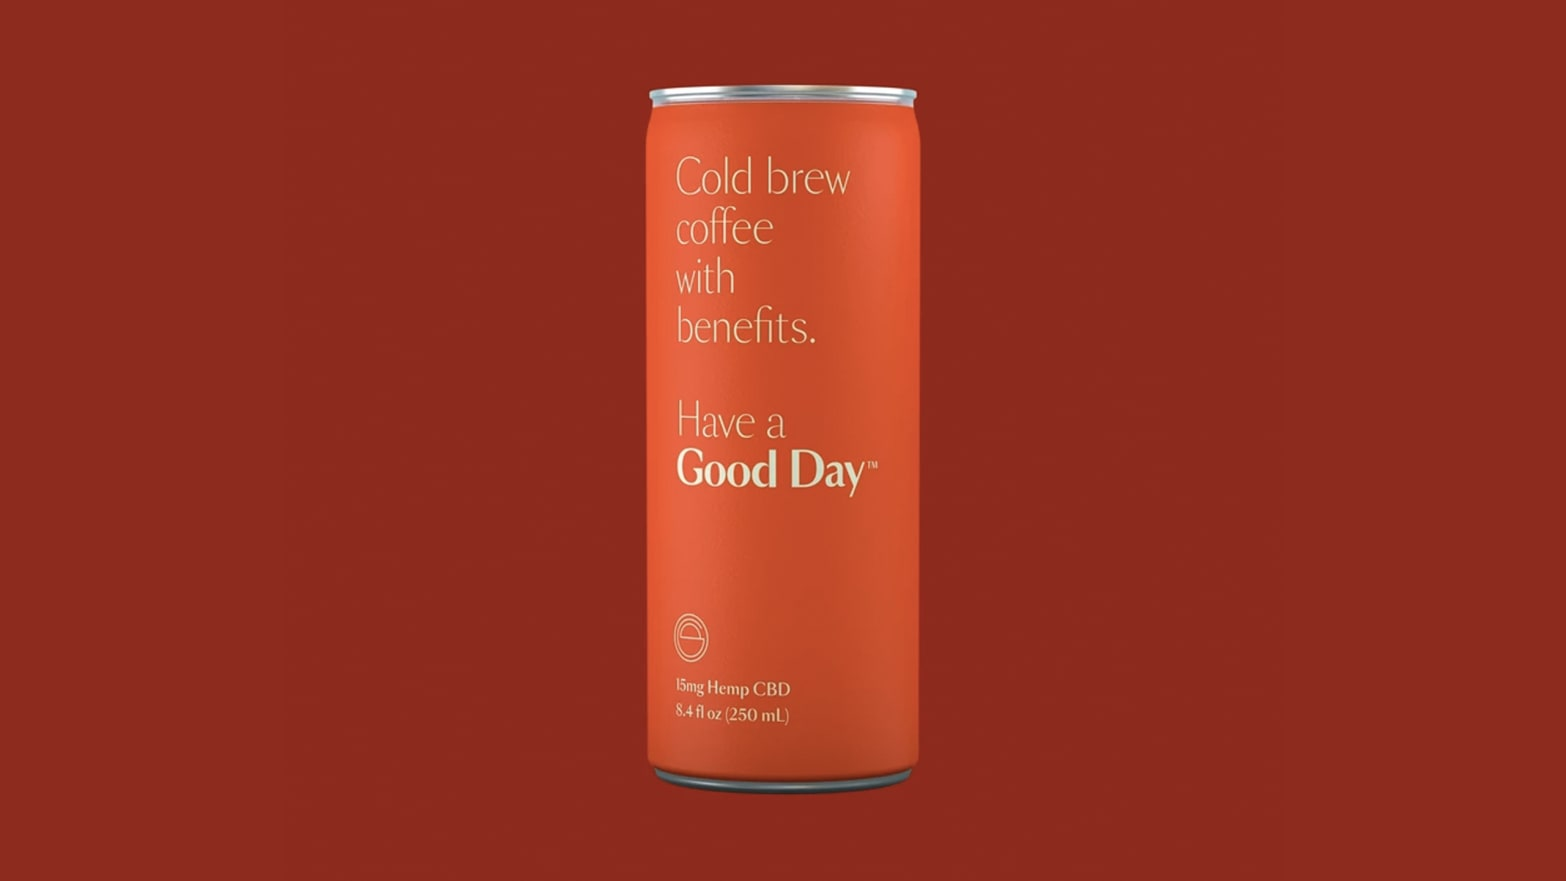 Good Day CBD Cold Brew Coffee Is a Punch of Caffeine with a Wash of CBD